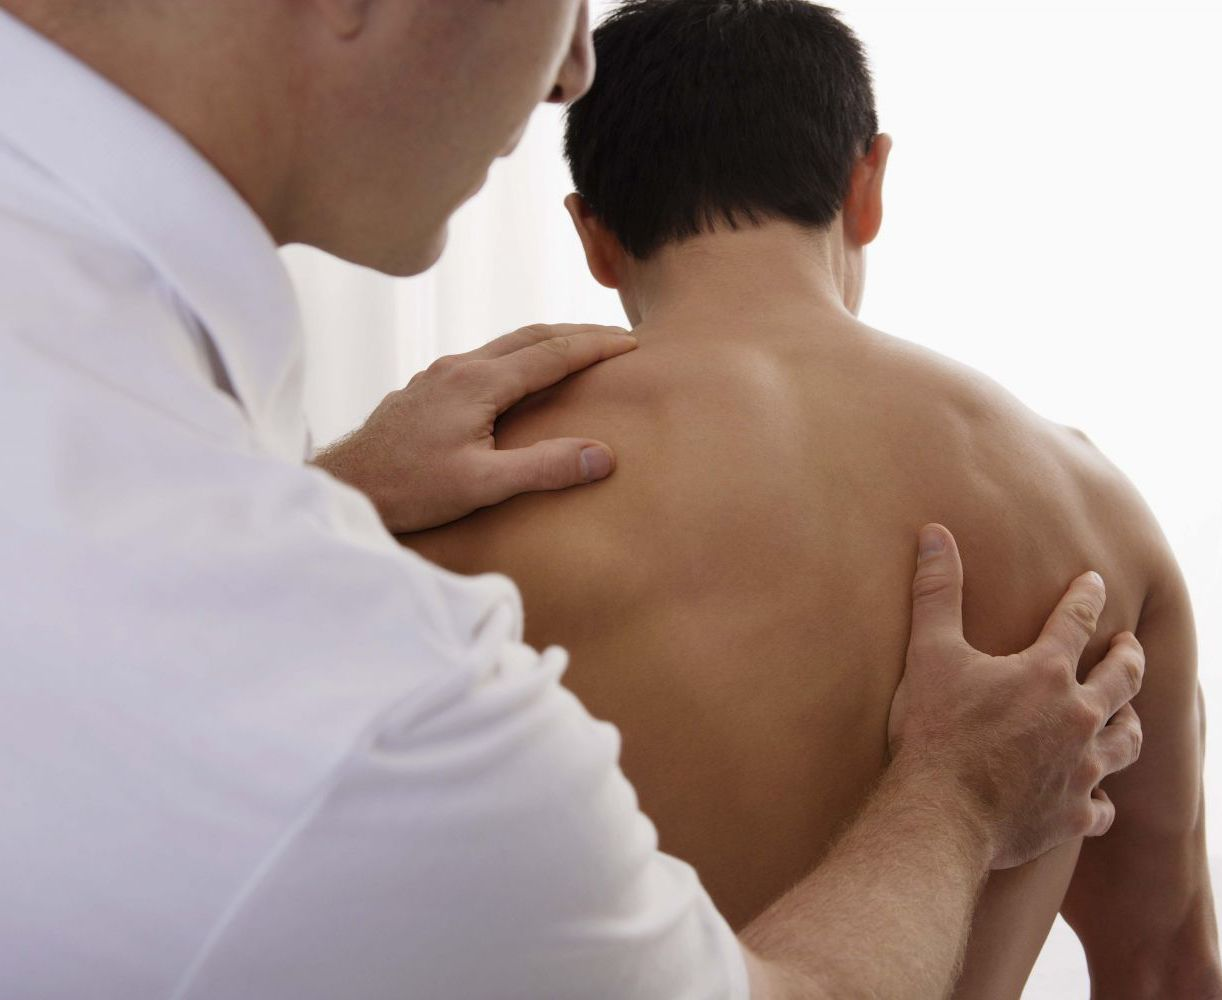 Chiropractor center works on spine alignment with a patient in Anchorage, AK